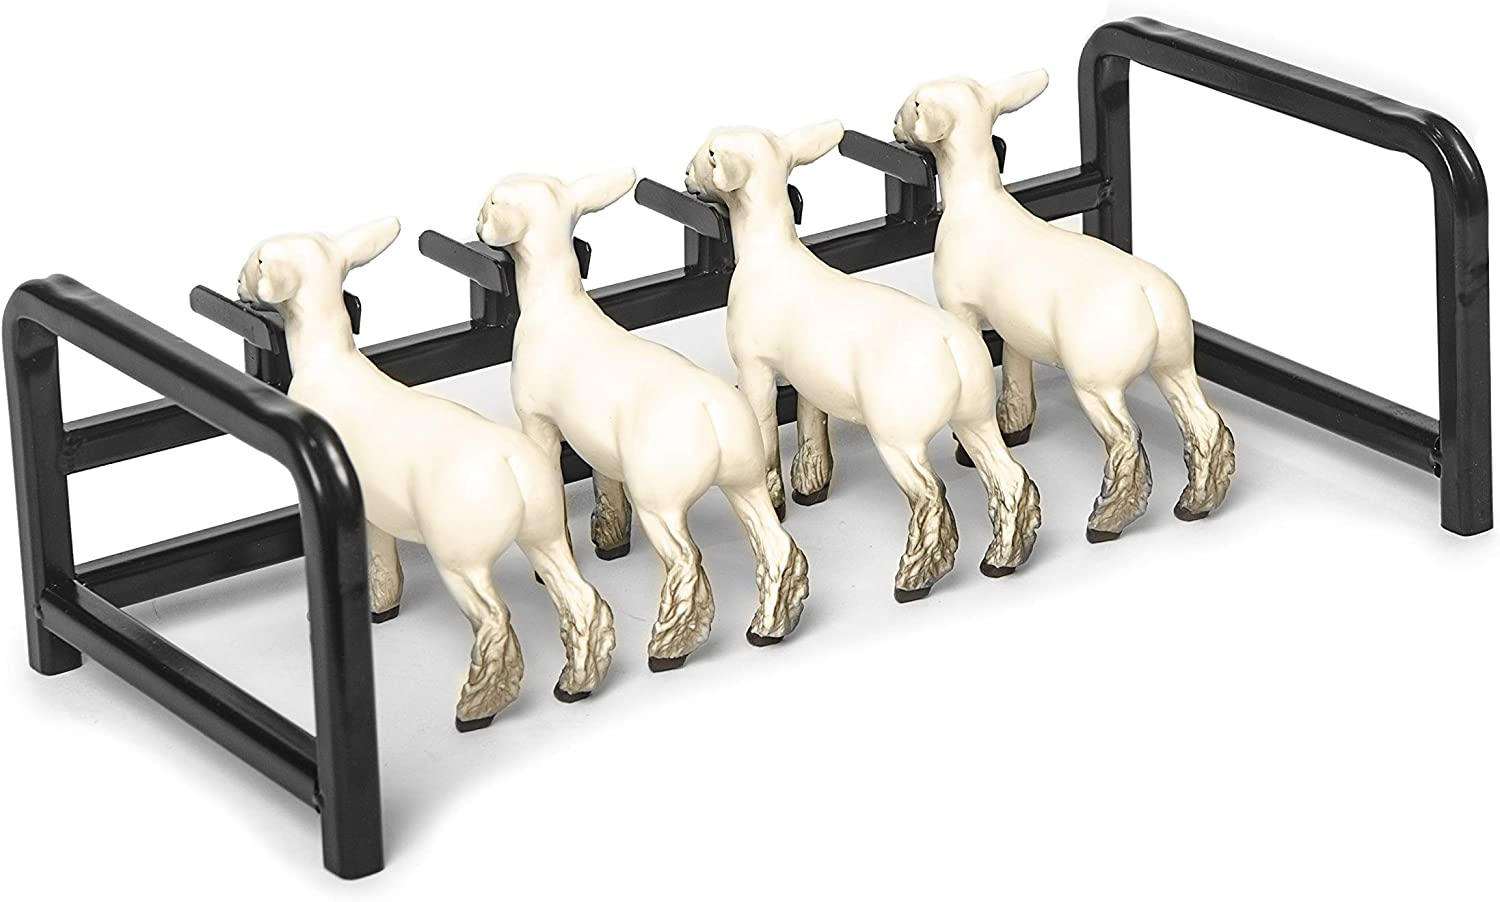 Little Buster Toys Head Goat//Lamb Show Rail with 4 Grand Doe Goats Set 1//16th Scale